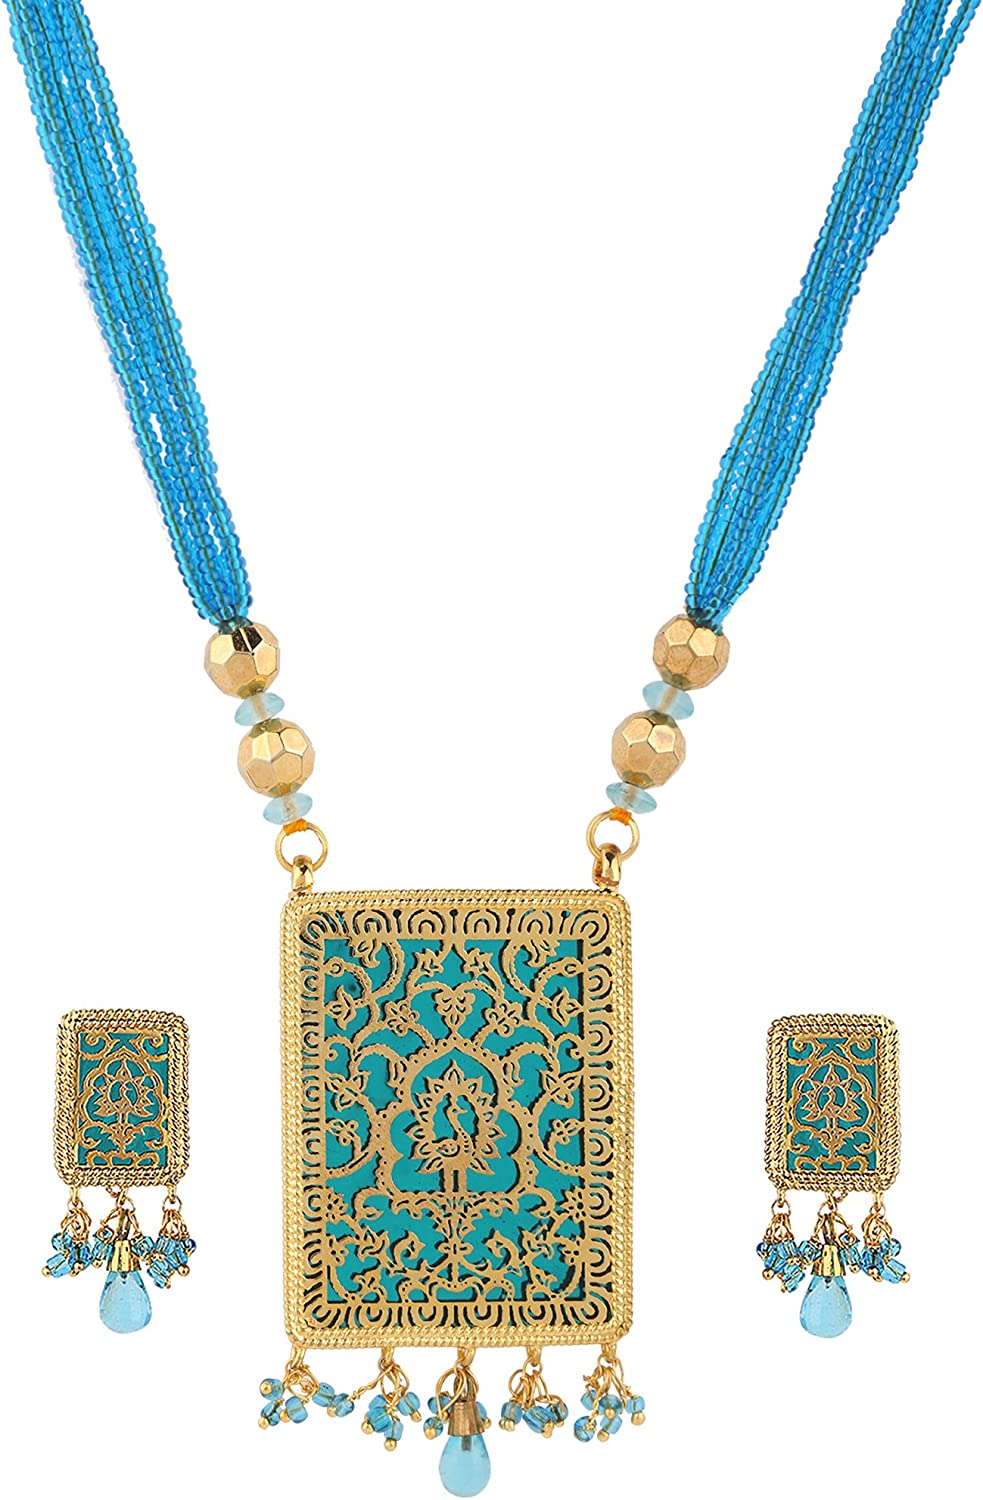 Swasti Jewels Indian Traditional Peacock Jaipur Thewa Art Pendant Earrings Jewelry for Women